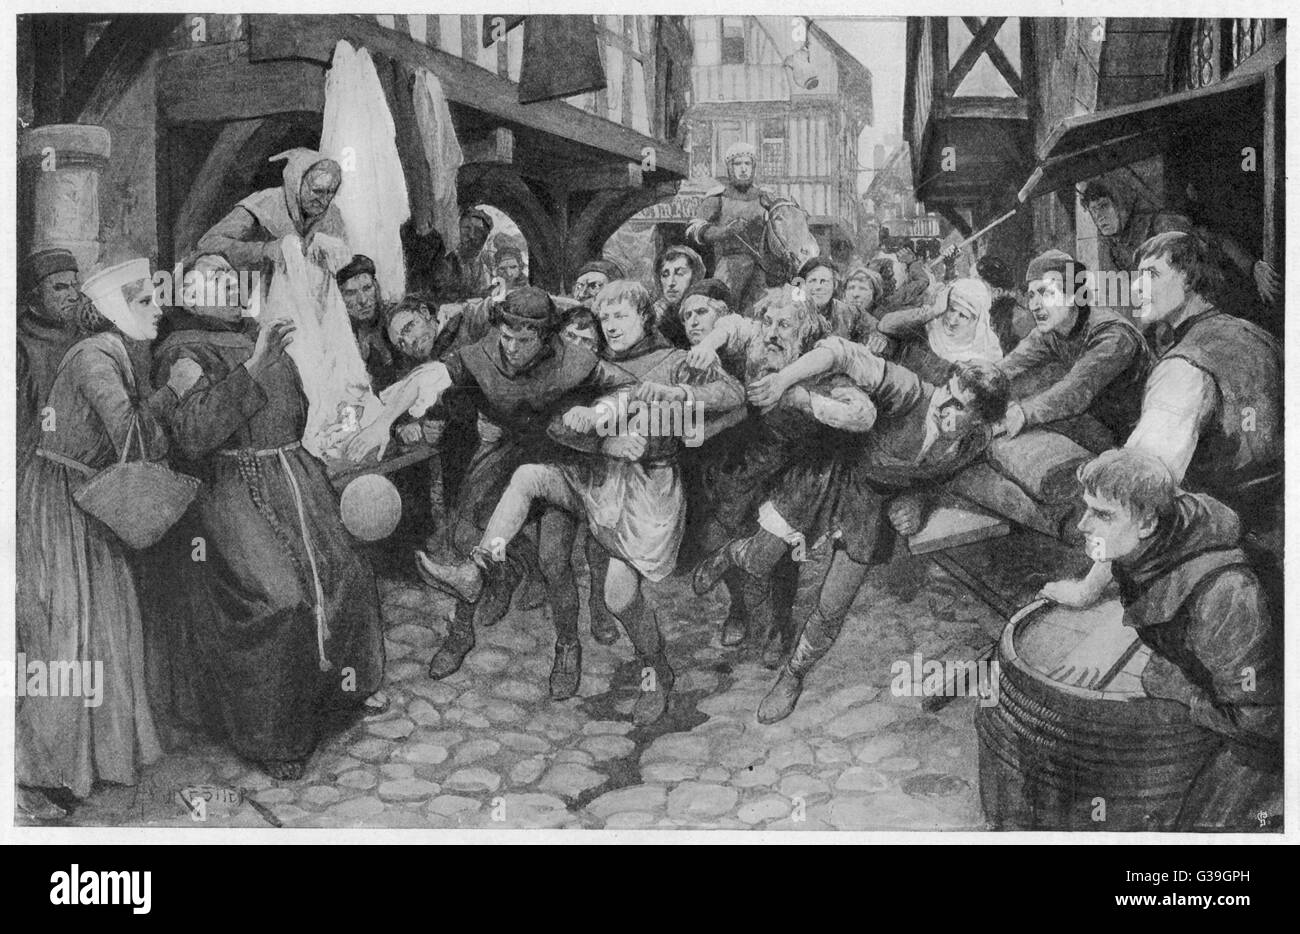 Football played in the street  during the Middle Ages         Date: circa 16th century - Stock Image